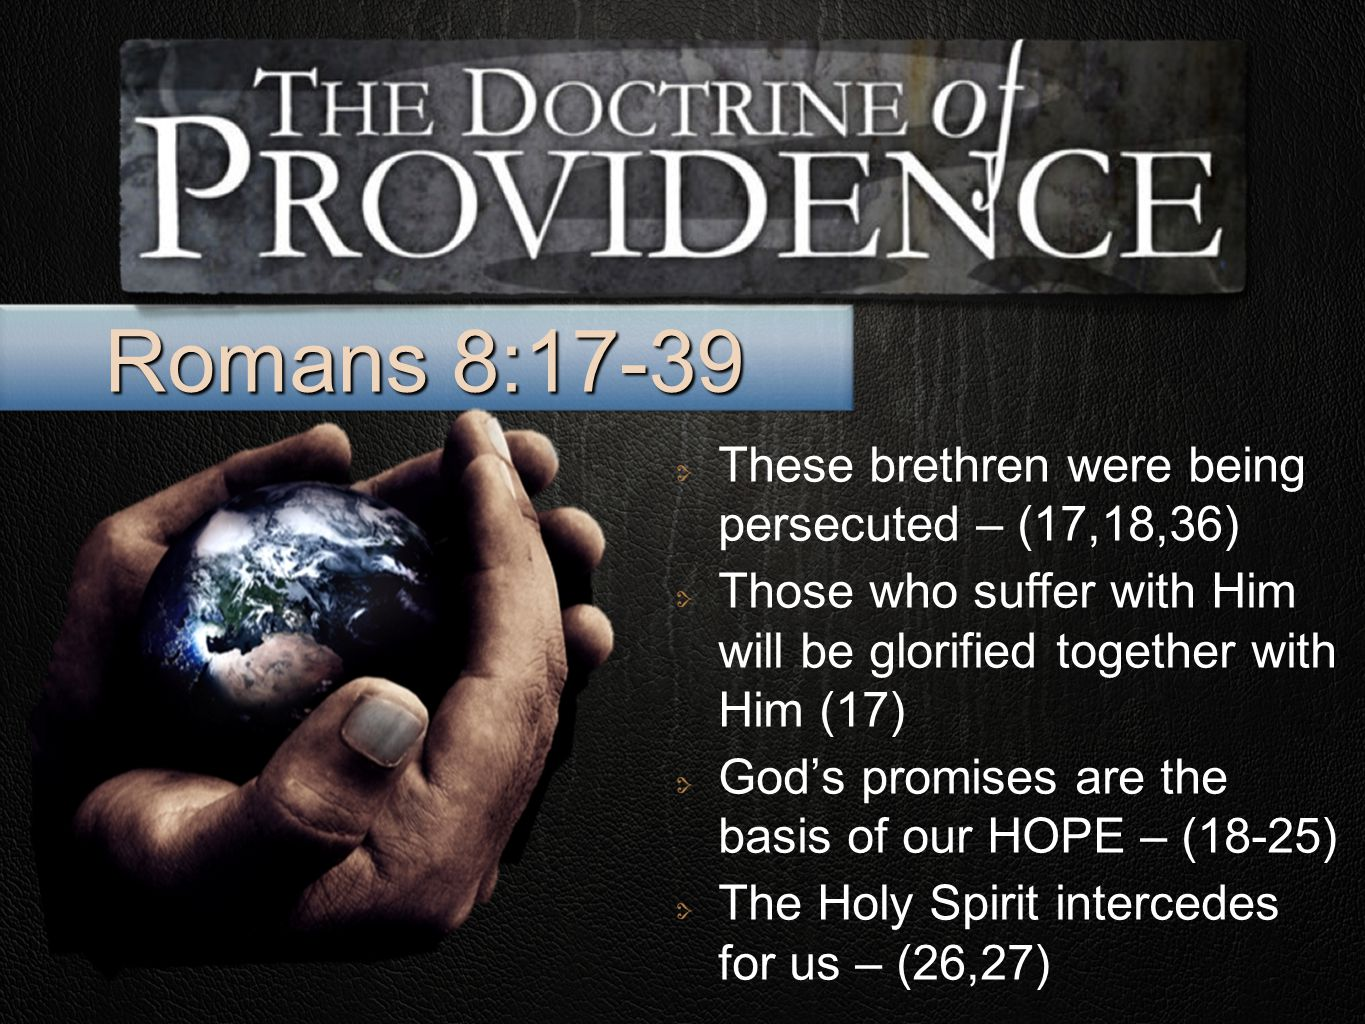 Romans 8:17-39 These brethren were being persecuted – (17,18,36) Those who suffer with Him will be glorified together with Him (17) God's promises are the basis of our HOPE – (18-25) The Holy Spirit intercedes for us – (26,27)